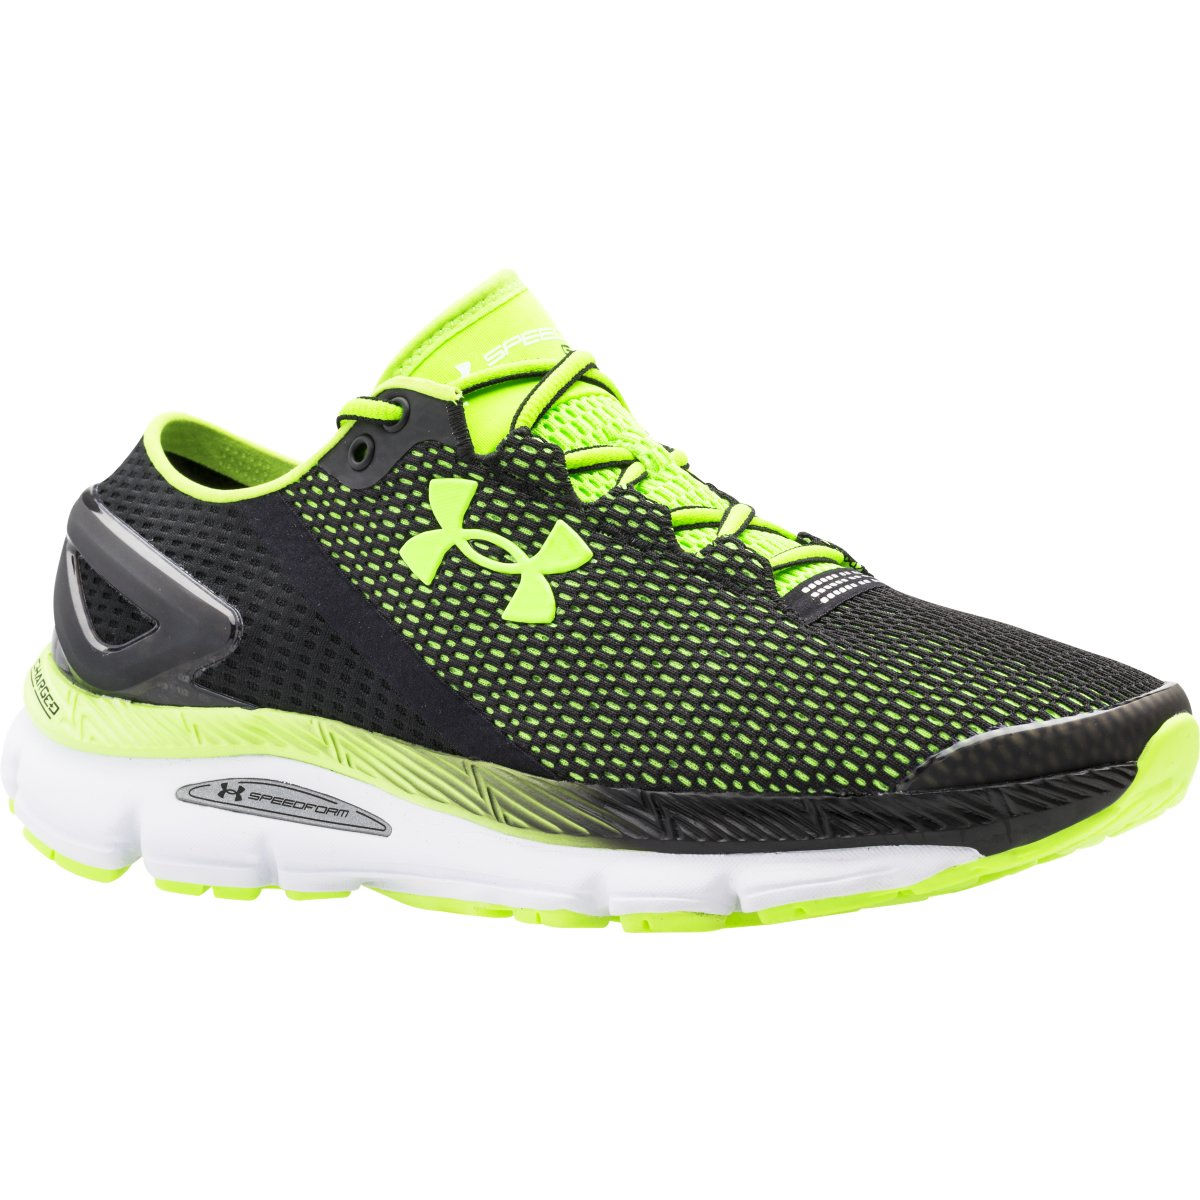 Chaussures Under Armour Speedform Gemini 2.1 (AH16) - 10 UK Black/White/Green Chaussures de running amorties